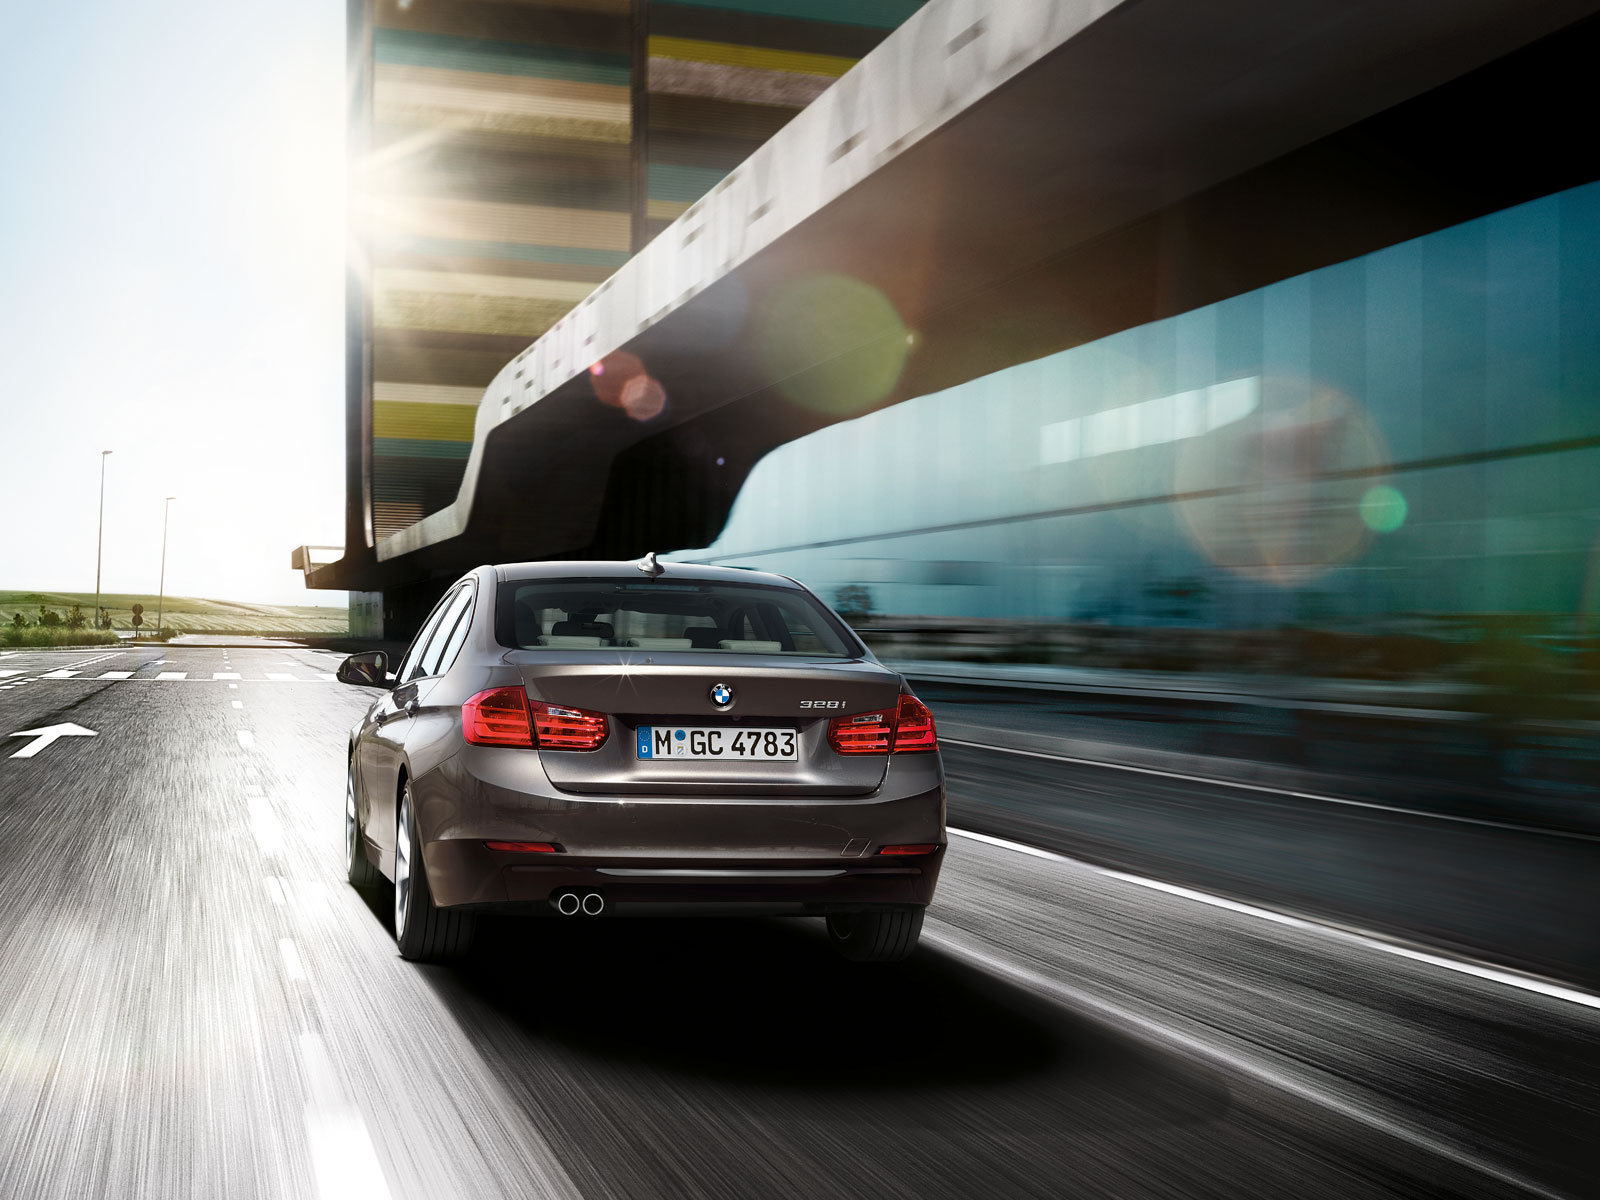 BMW_3series_wallpaper_04_1600